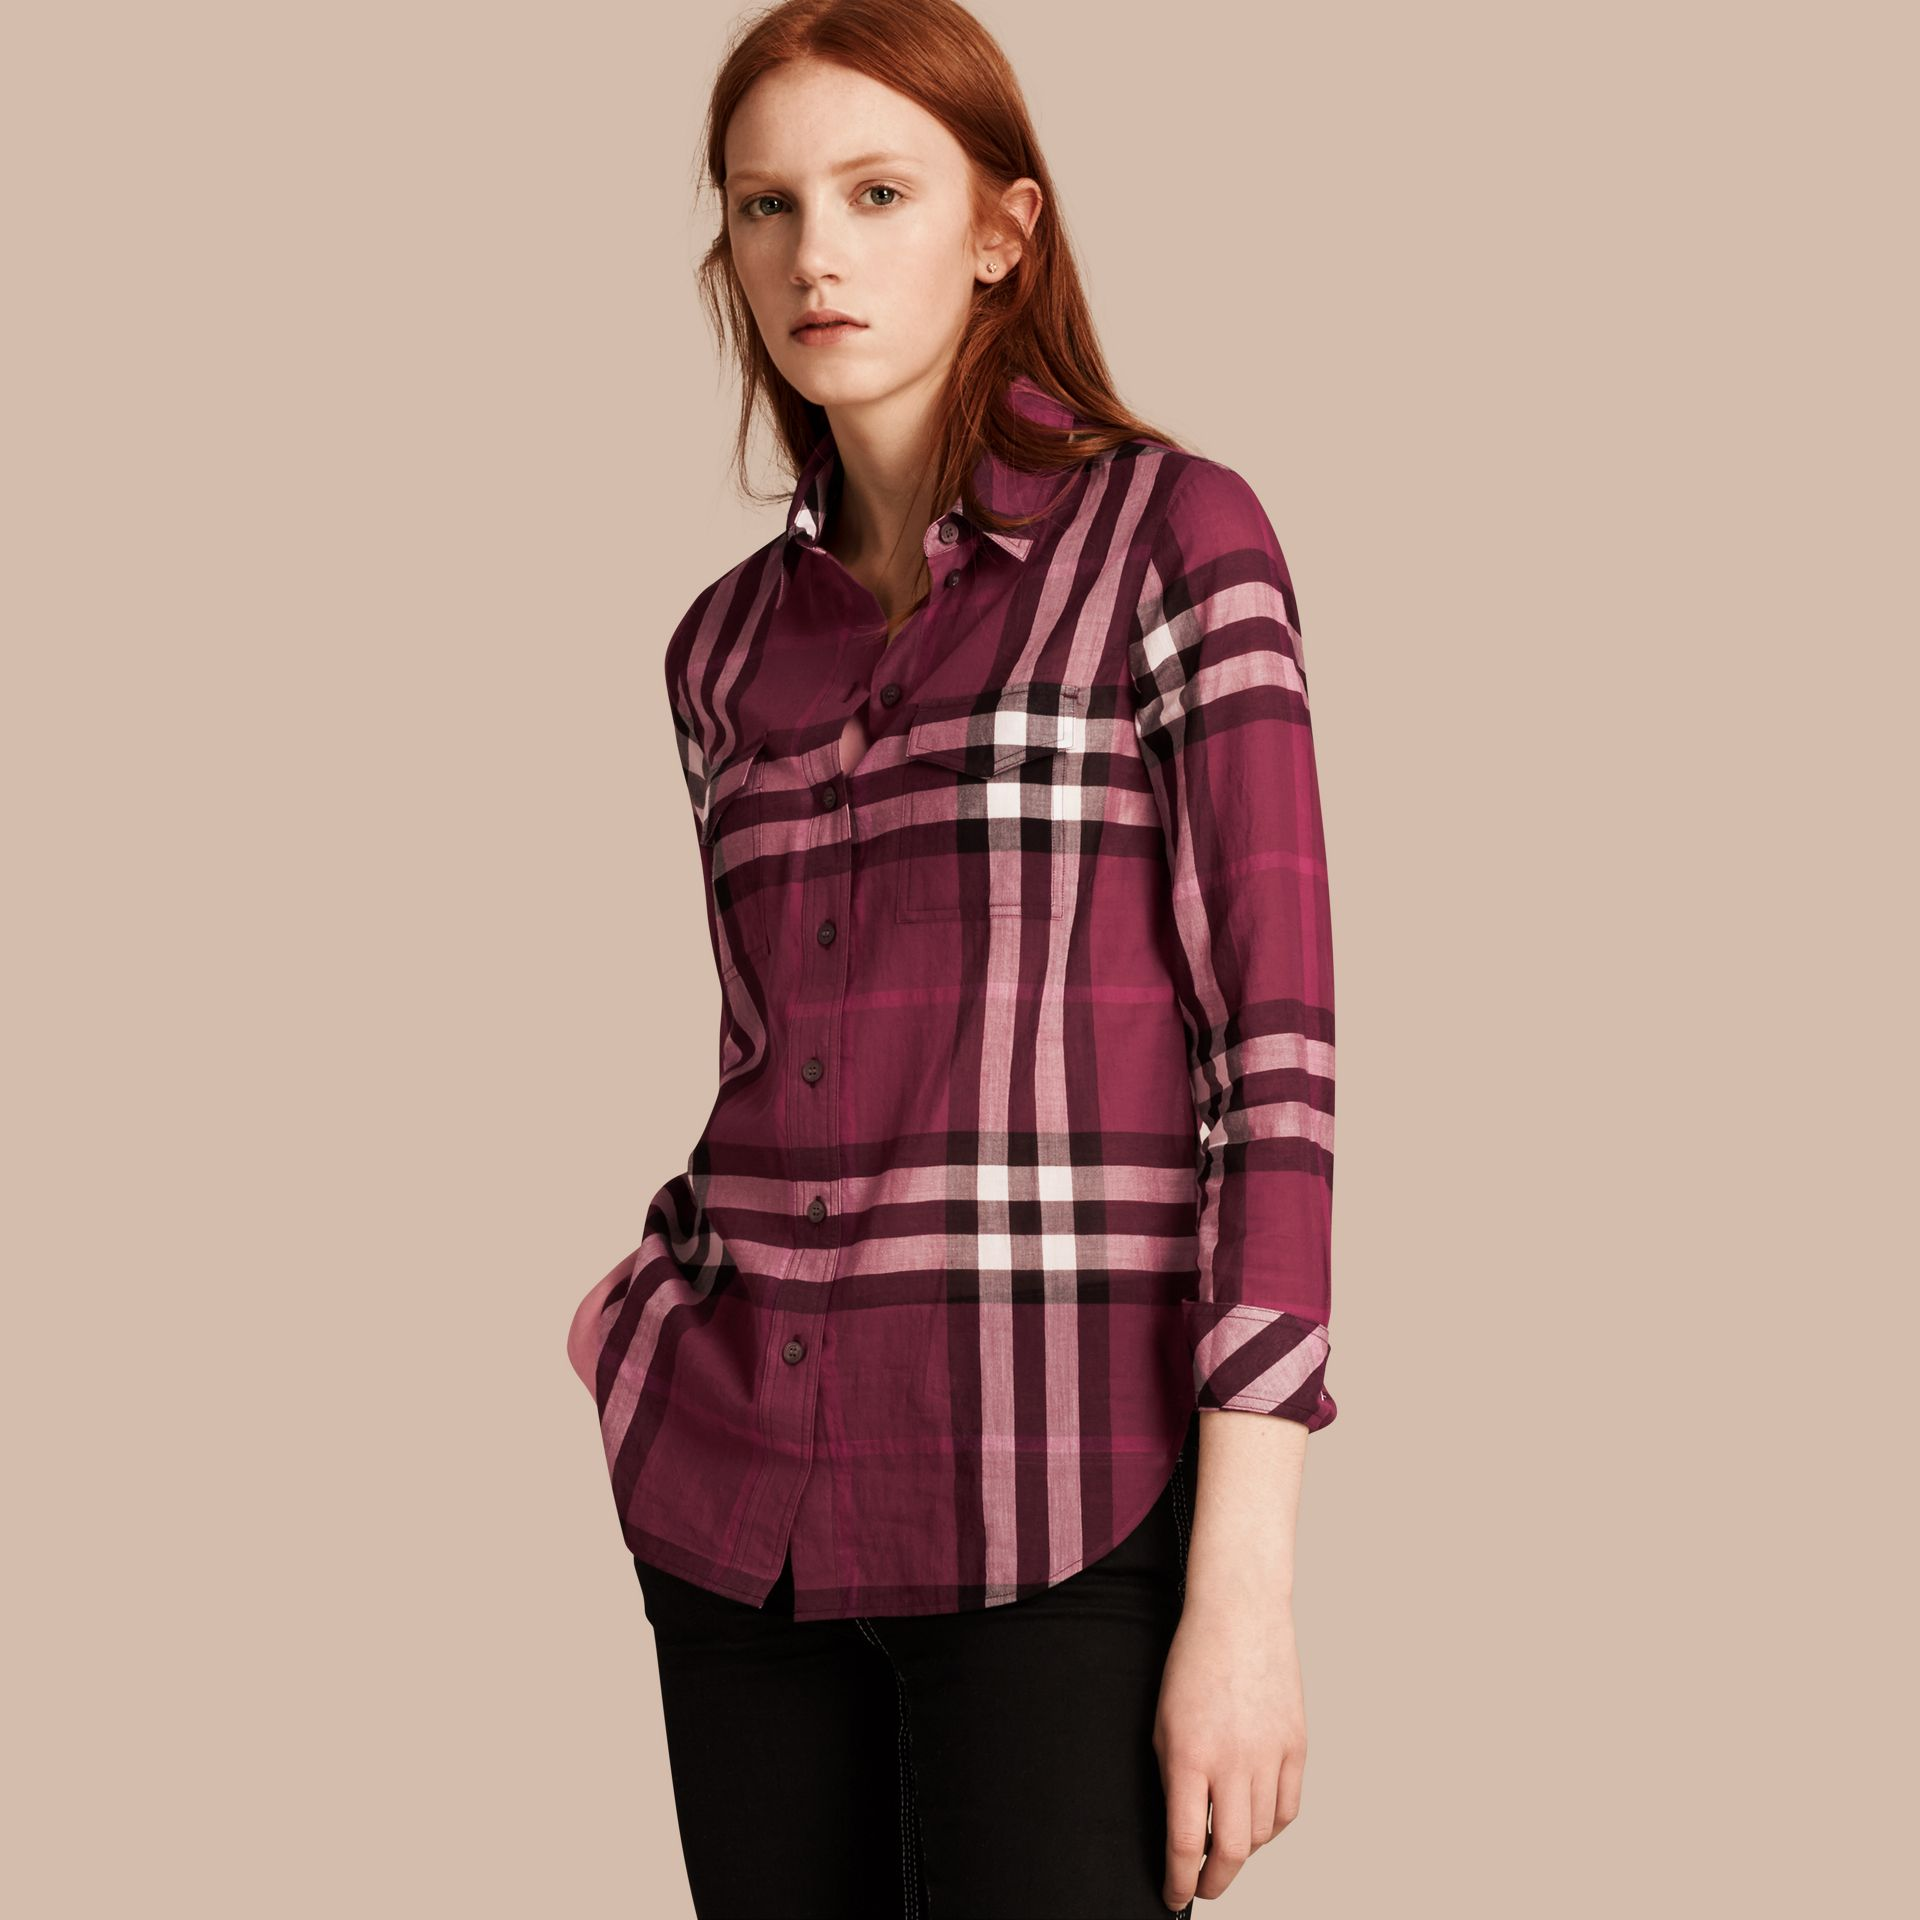 Magenta Check Cotton Shirt Magenta - gallery image 1